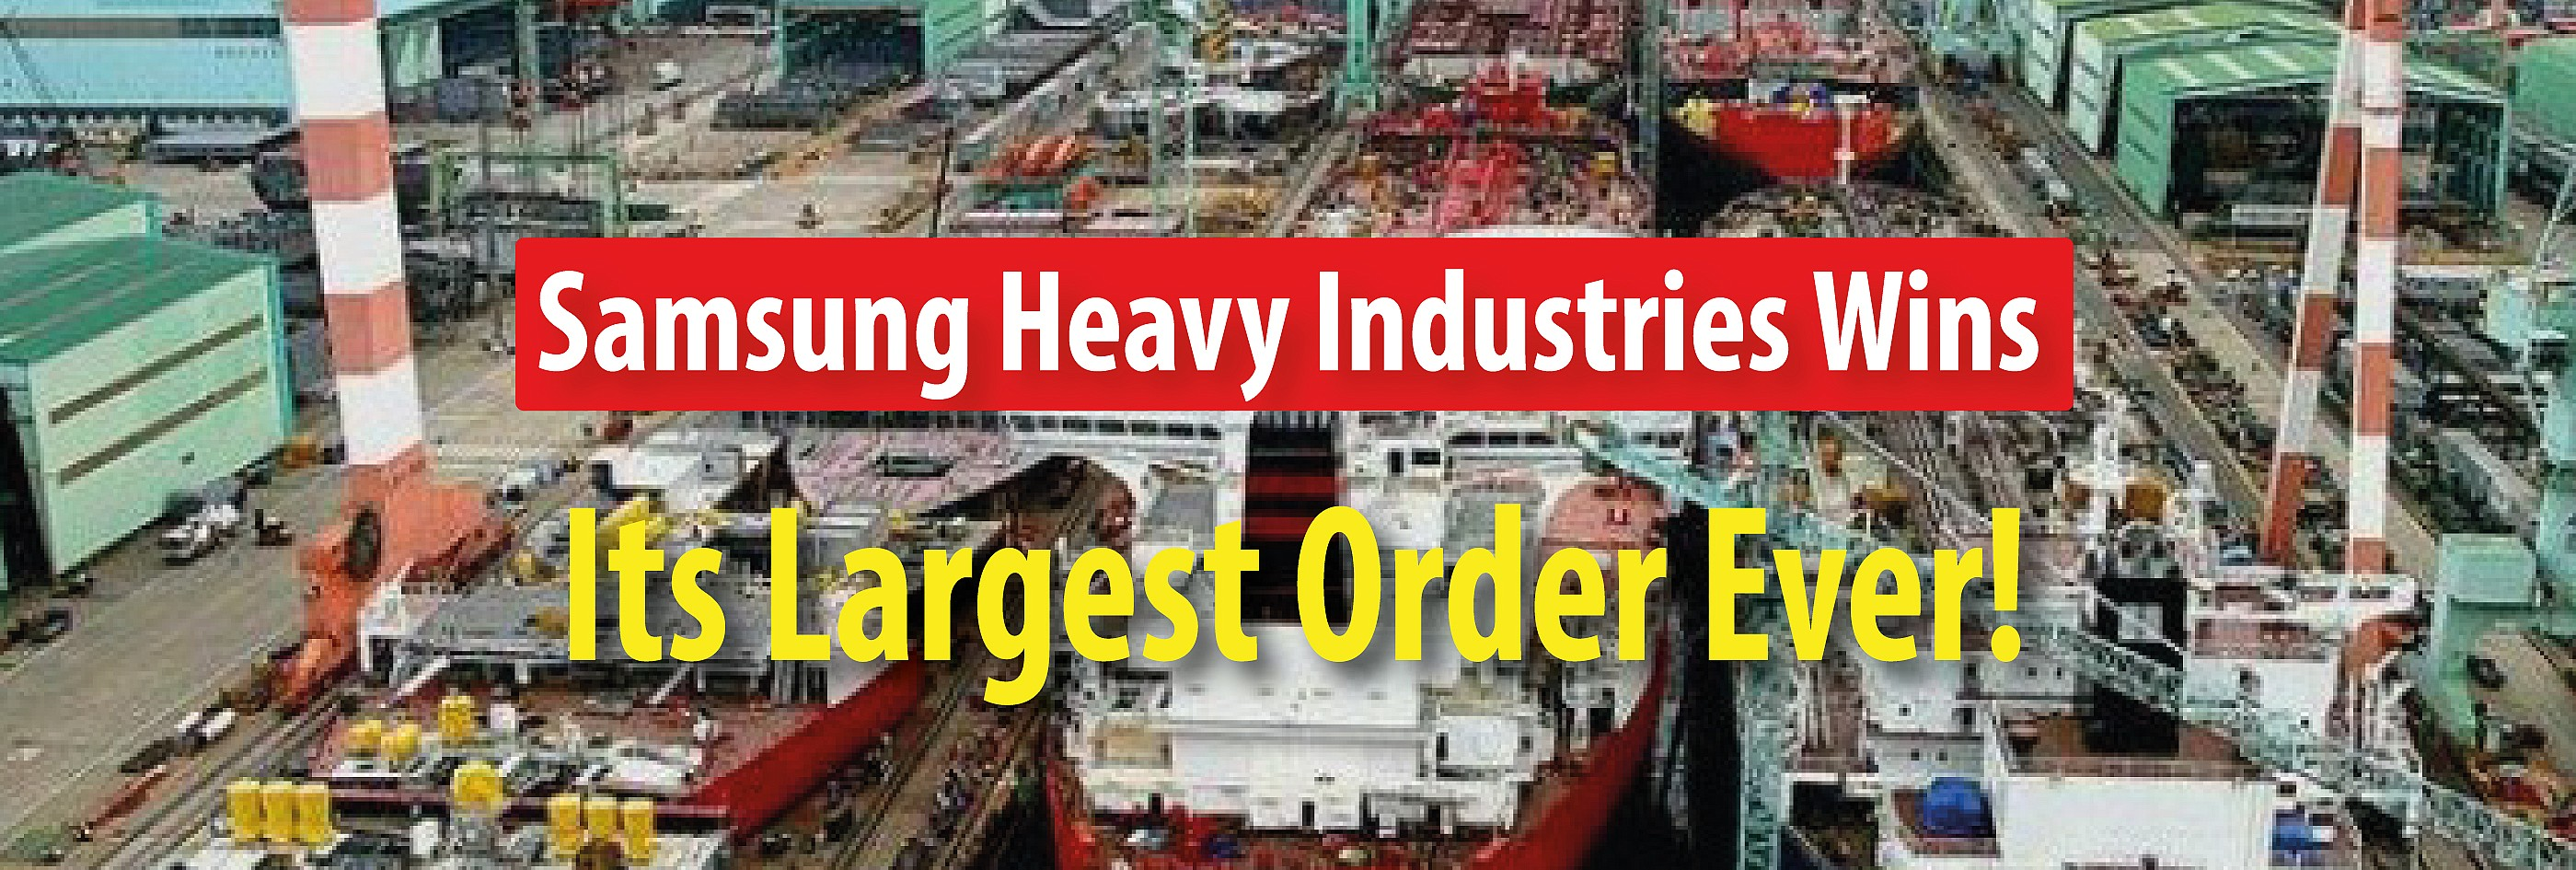 Samsung Heavy Industries Wins its Largest Order Ever!